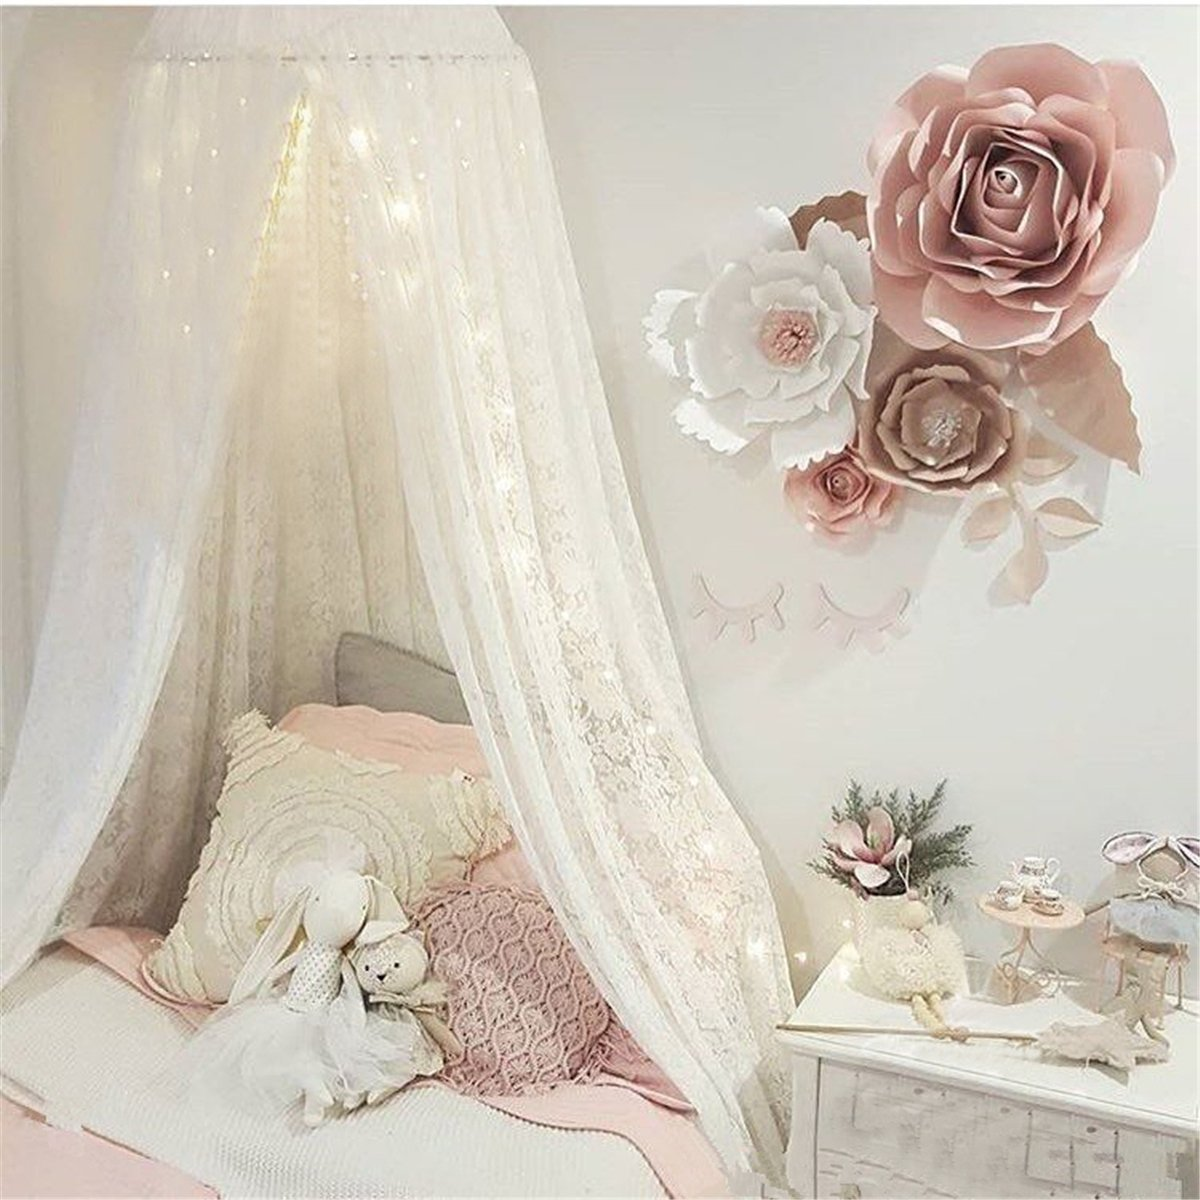 Princess Bed Canopy Lace Mosquito Net for Kids Baby , Round Dome Kids Indoor Outdoor Castle Play Tent Hanging House Decoration Reading Nook Cotton Canvas Height 270cm/107 inch (White)